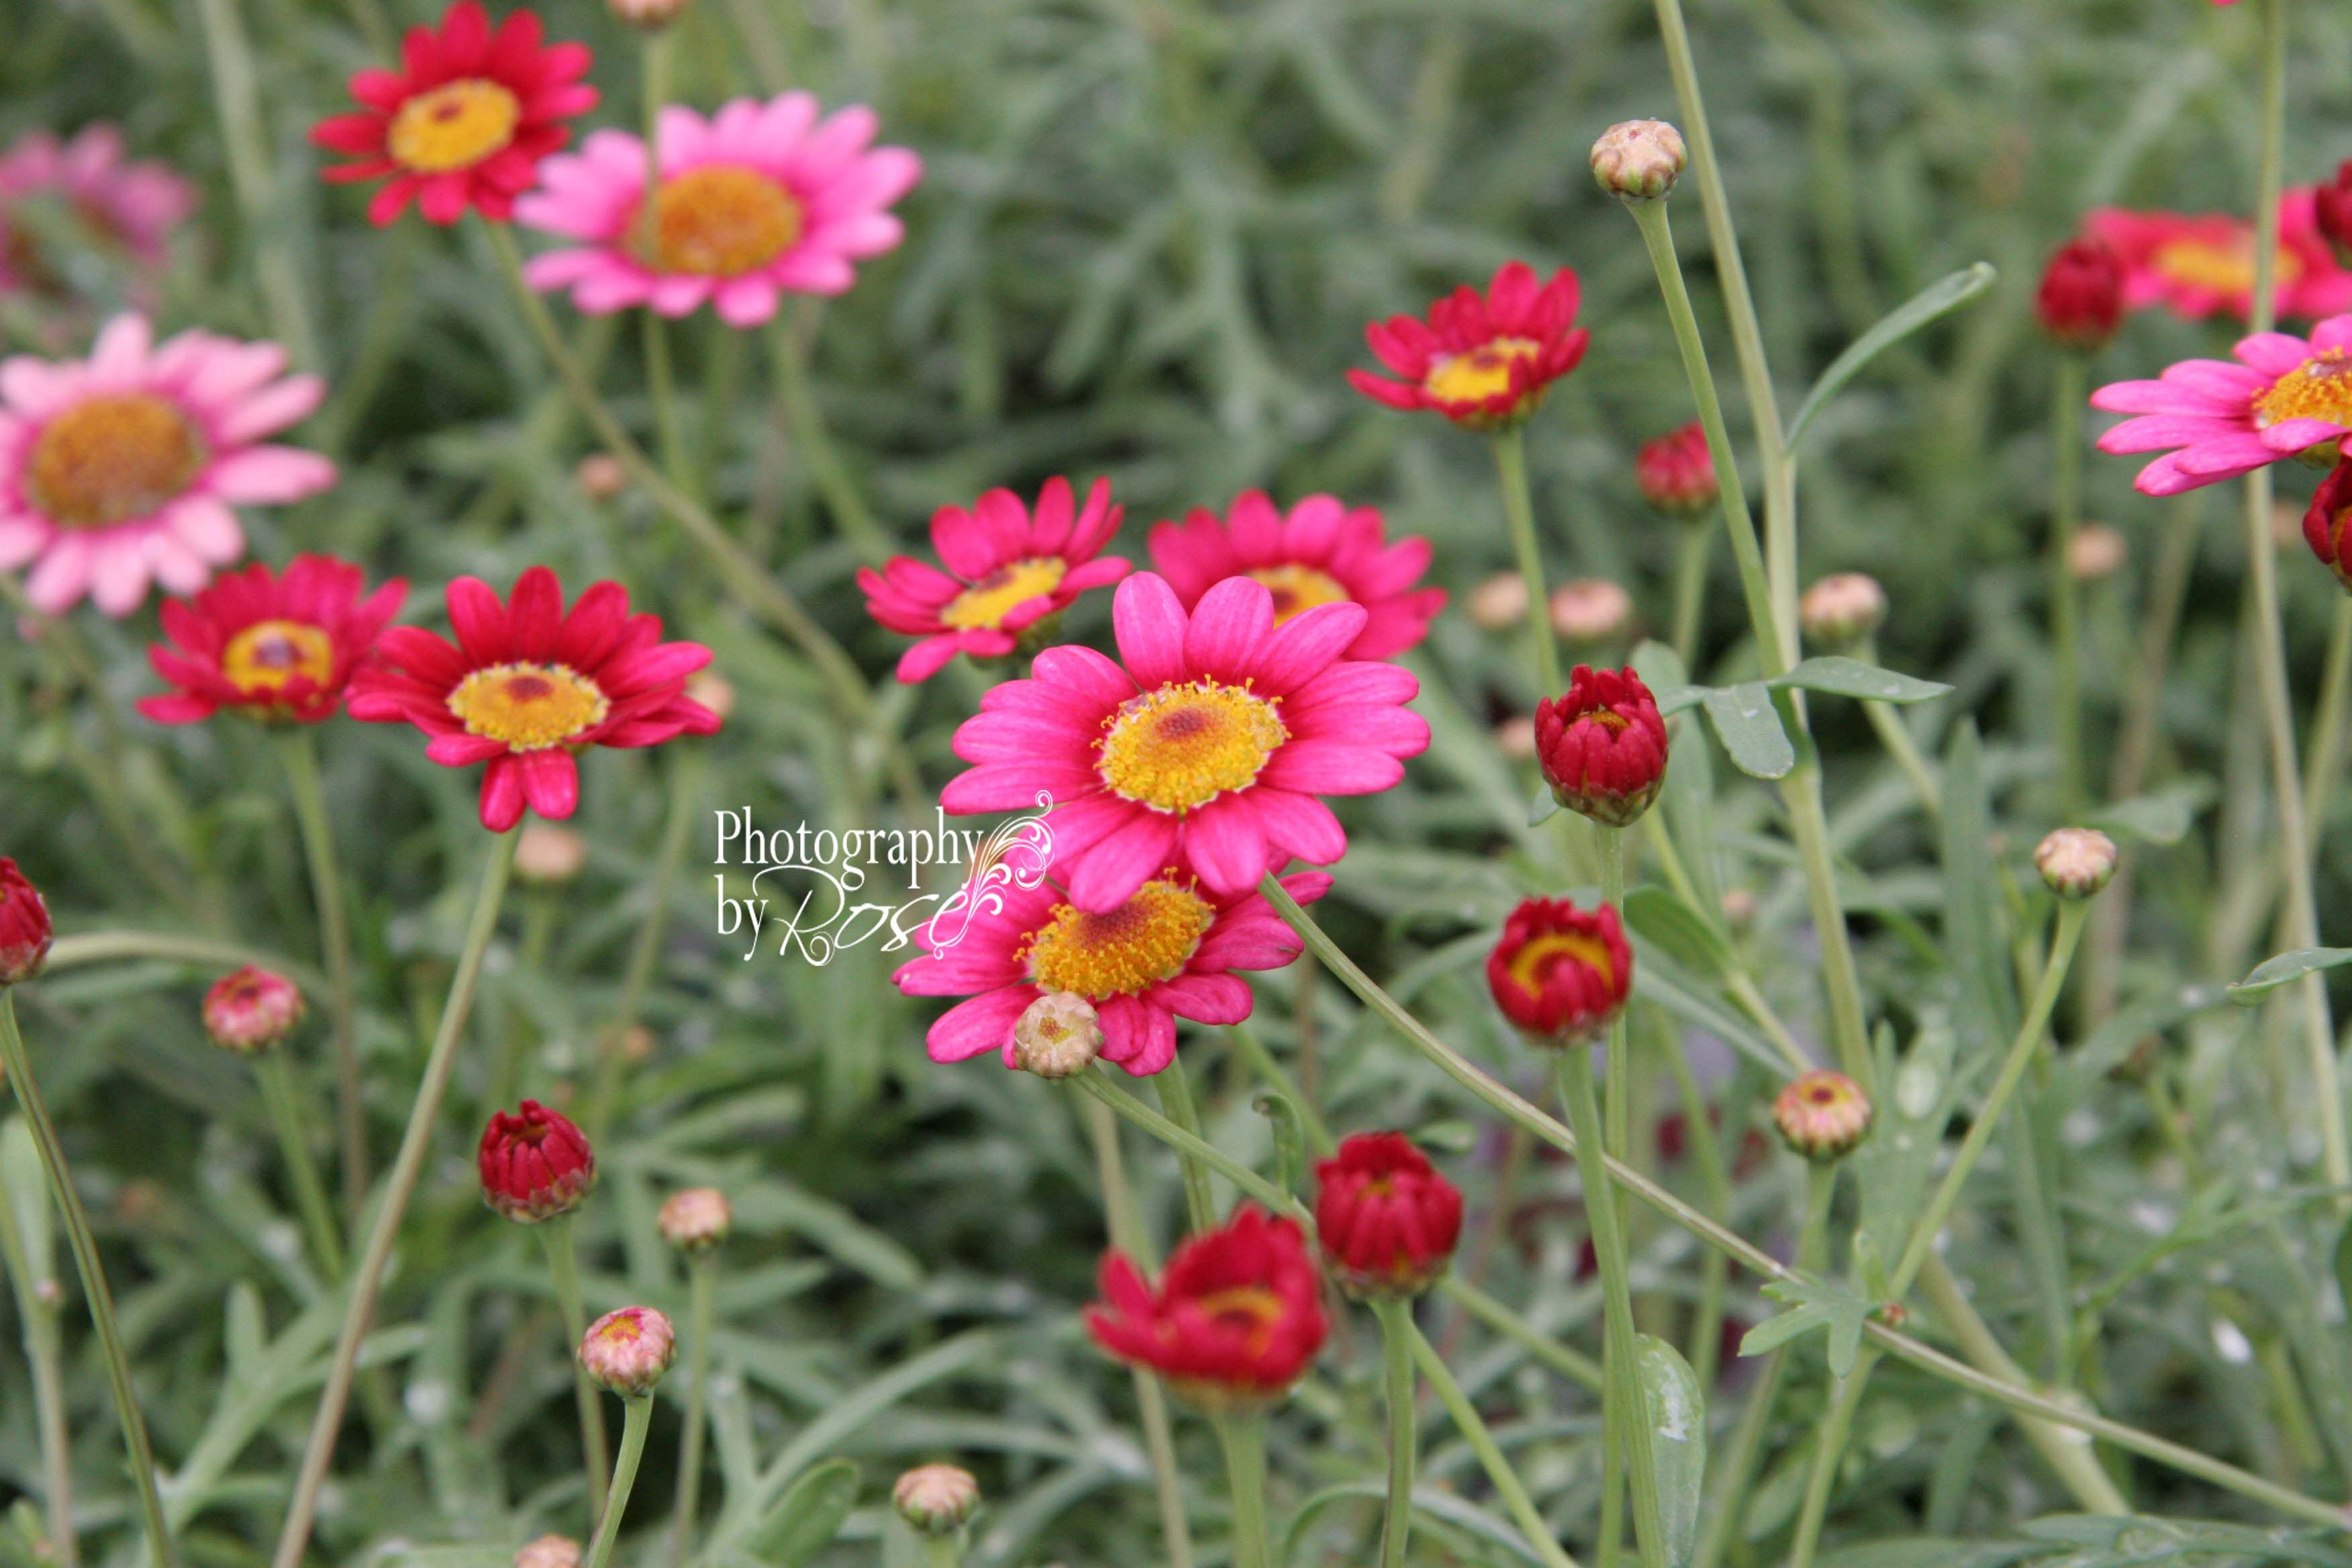 floral art\ photography \ painted daisies\  flowers